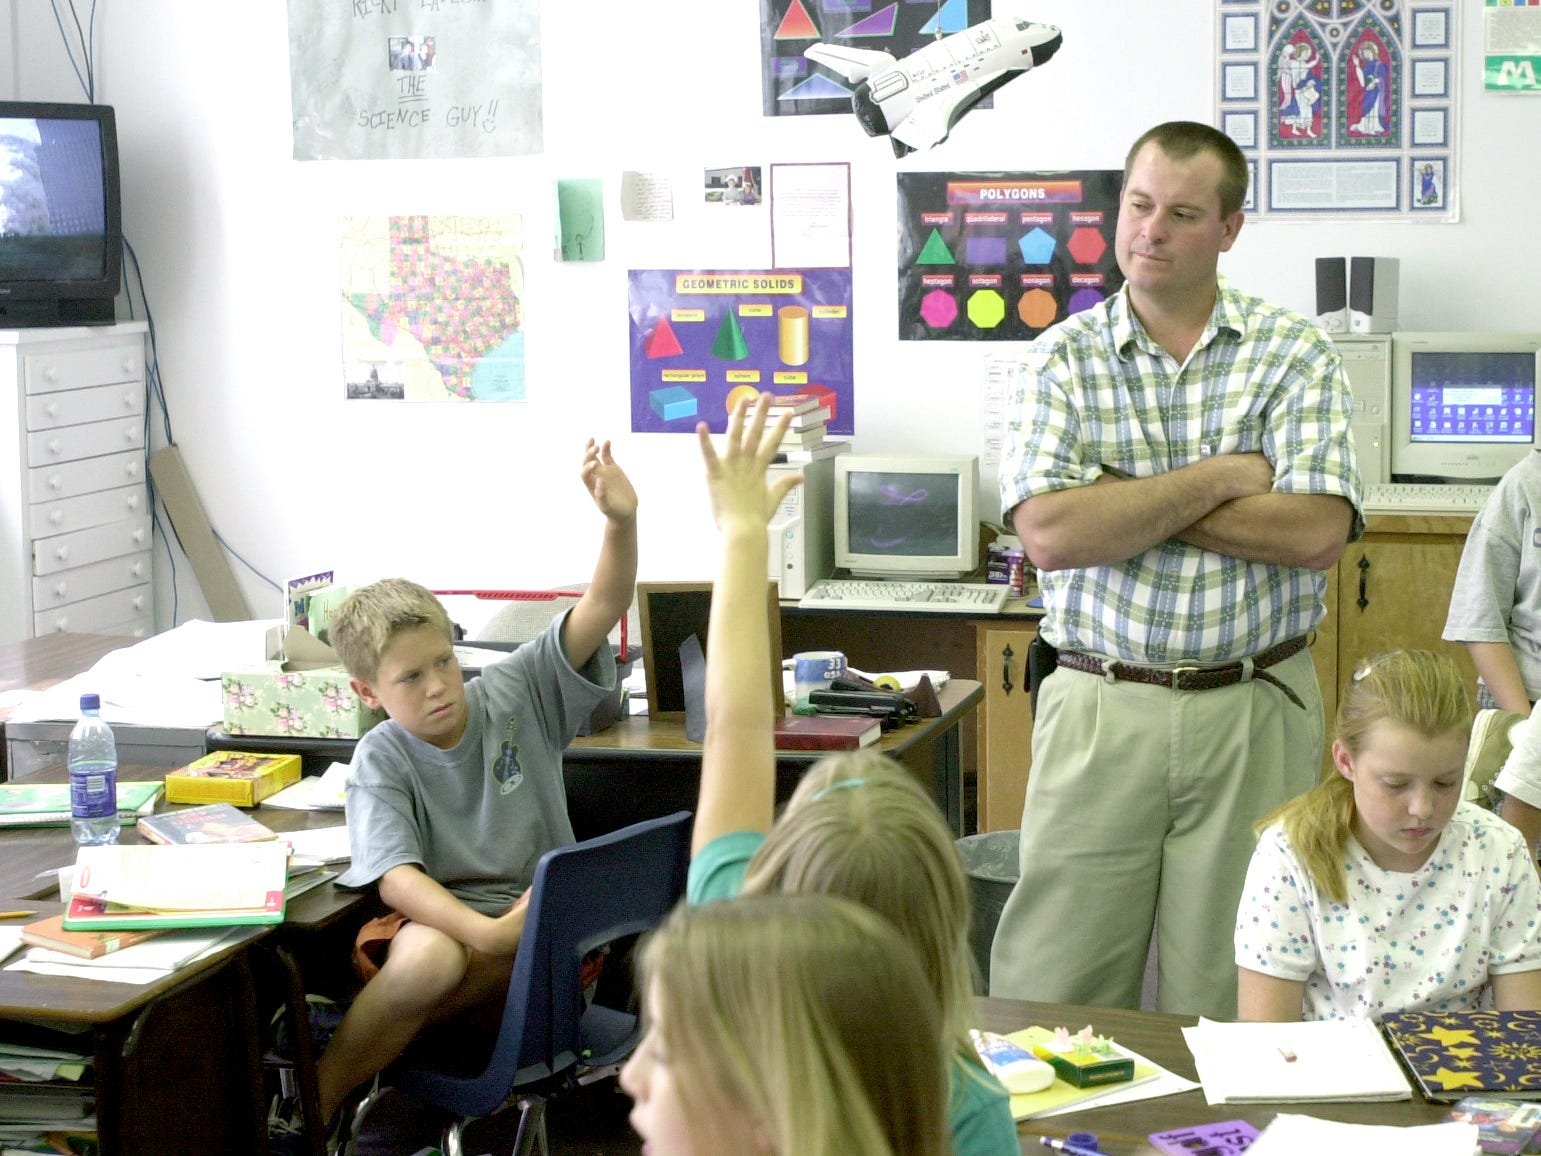 Ricky Eades' listens to his fifth grade class at Santa Rita Elementary talk about the World Trade Center attacks during a current events discussion Sept. 11, 2001.